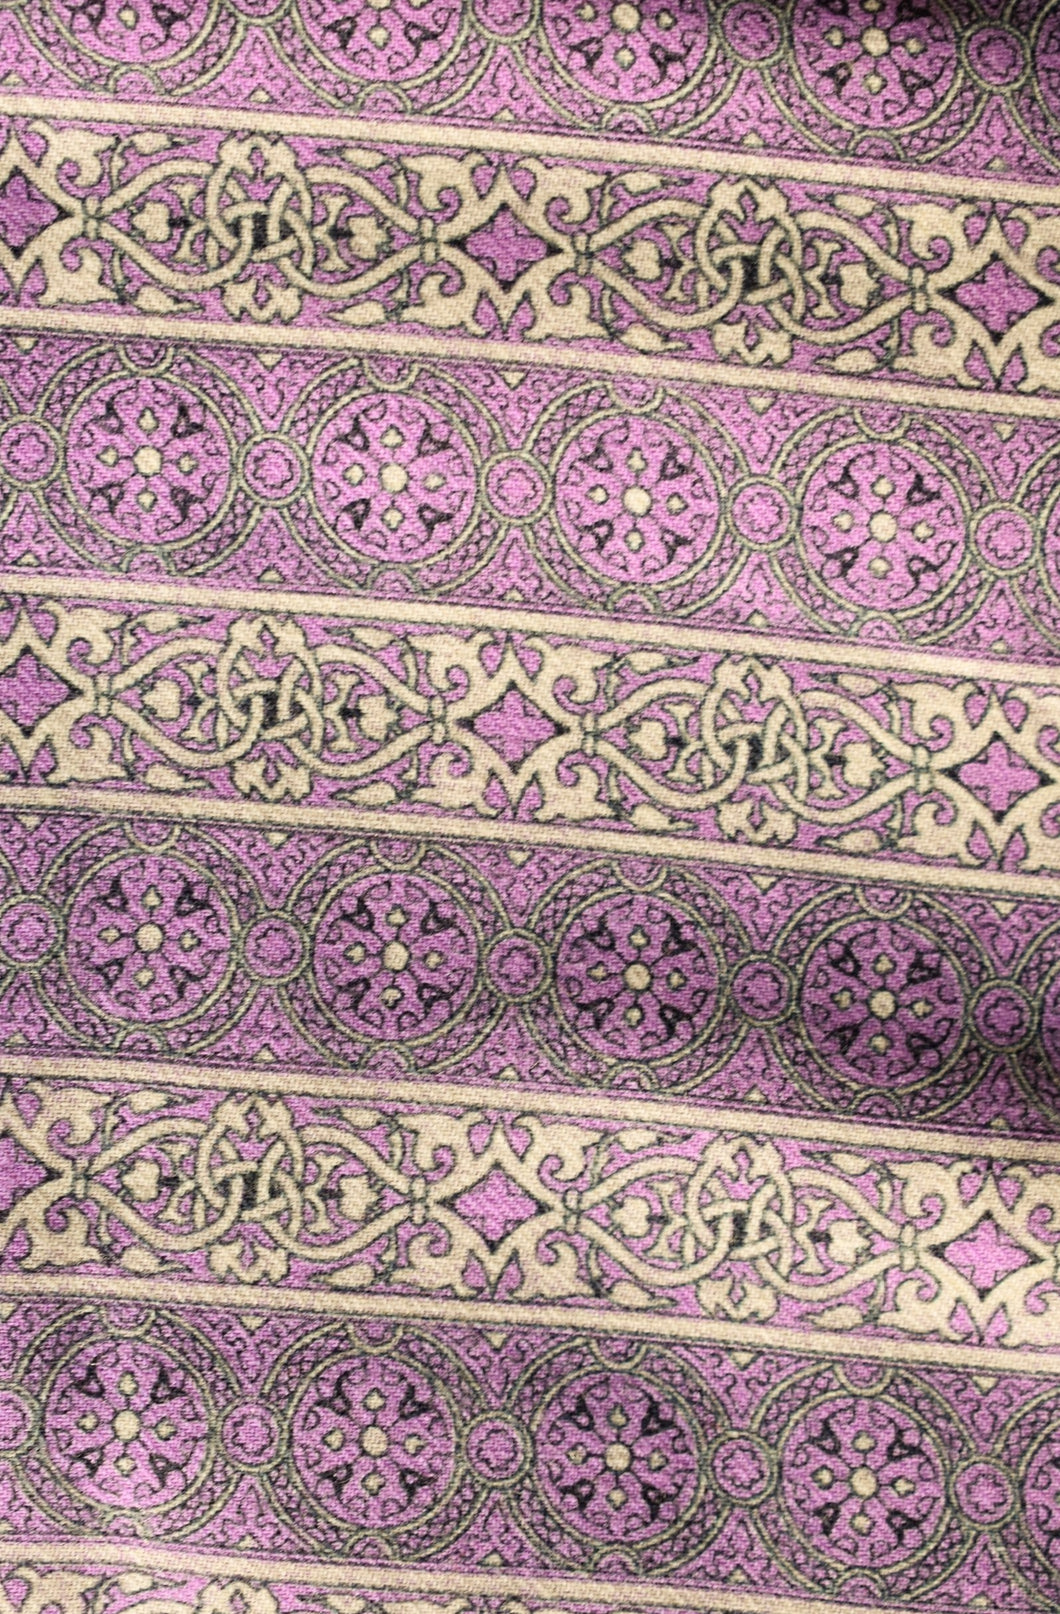 Vintage viyella purple fabric 90cm x 2.7m